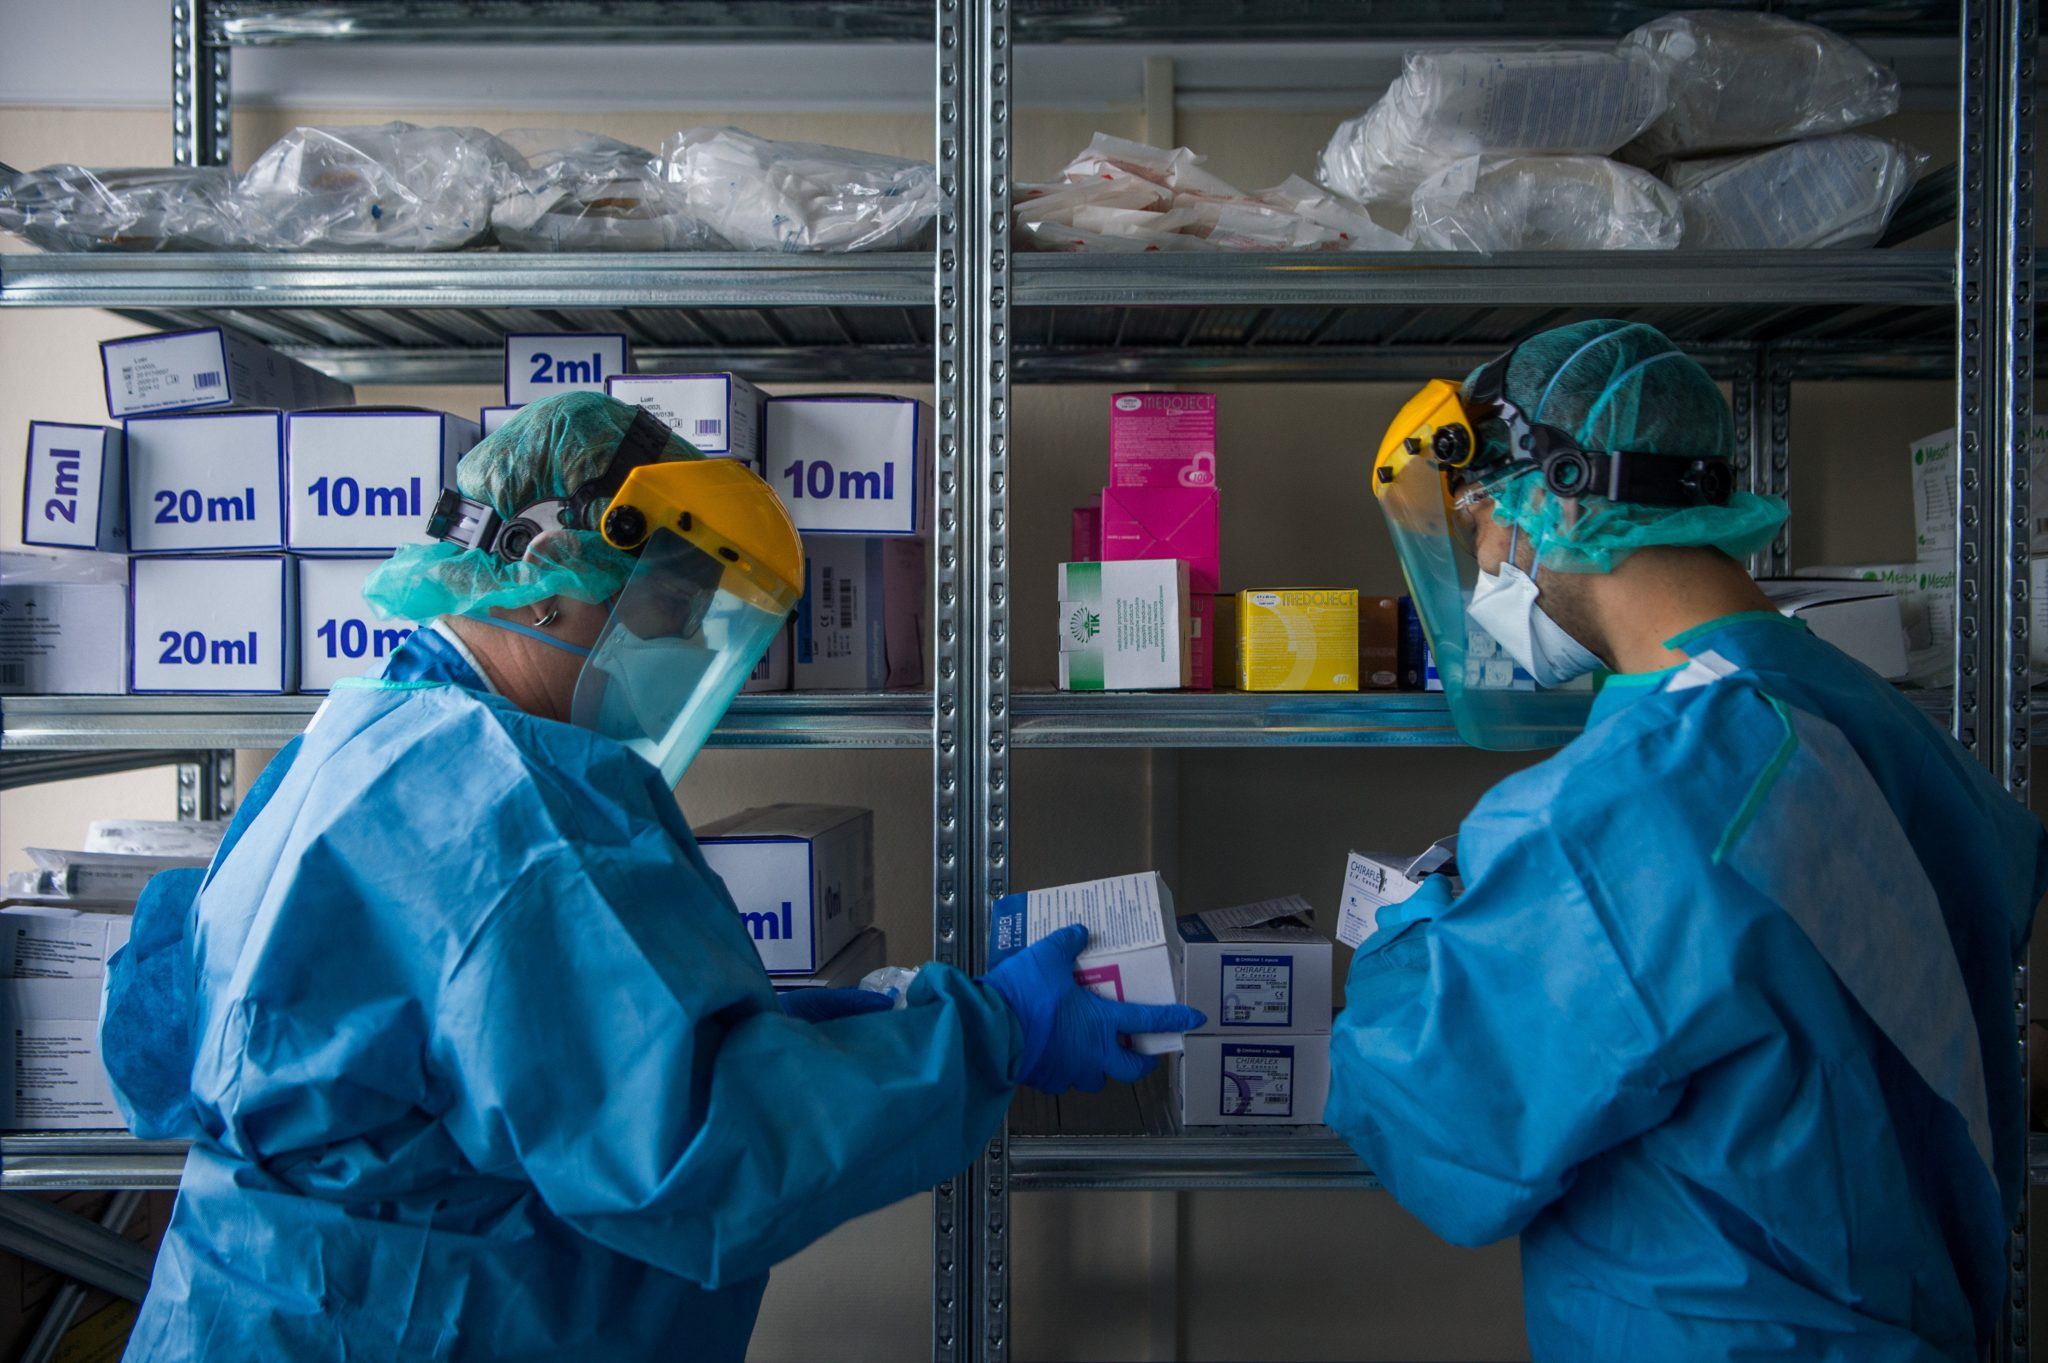 Hungary Preparing for Mass Coronavirus Infections with Temporary Hospitals, Pre-screening Tents post's picture